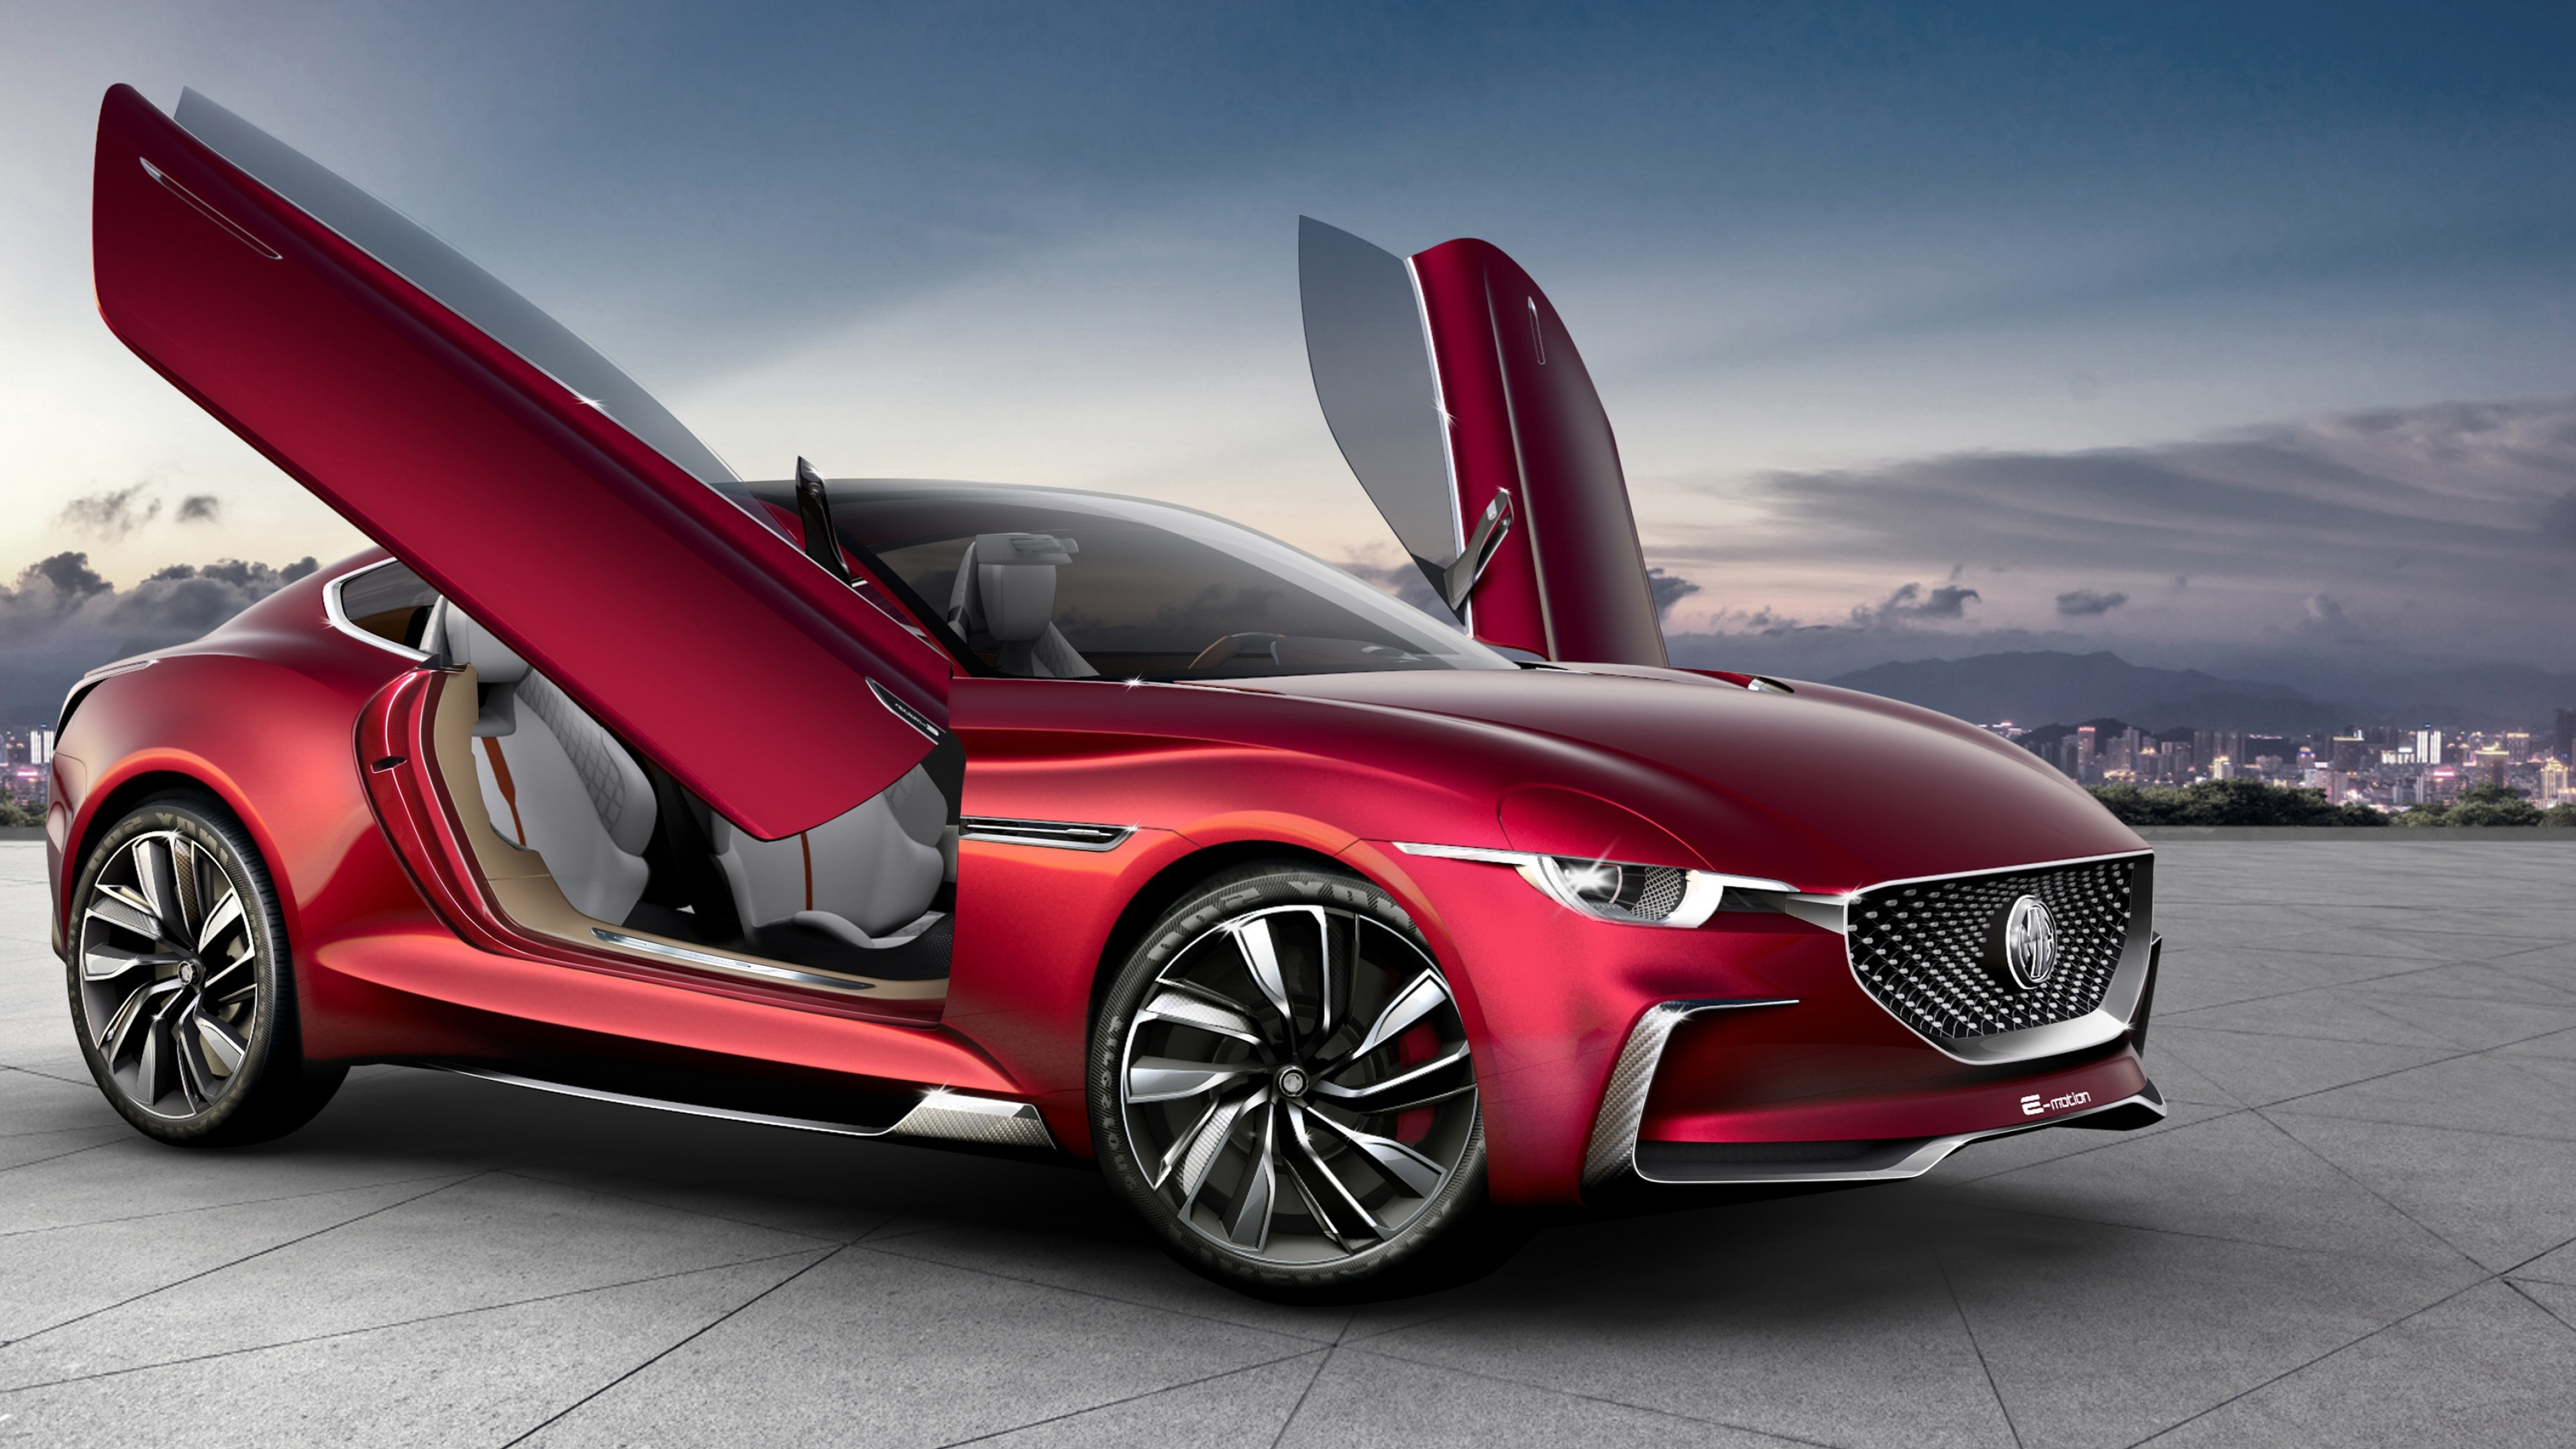 MG E-Motion EV Sports Car 2020 Photo Wallpaper